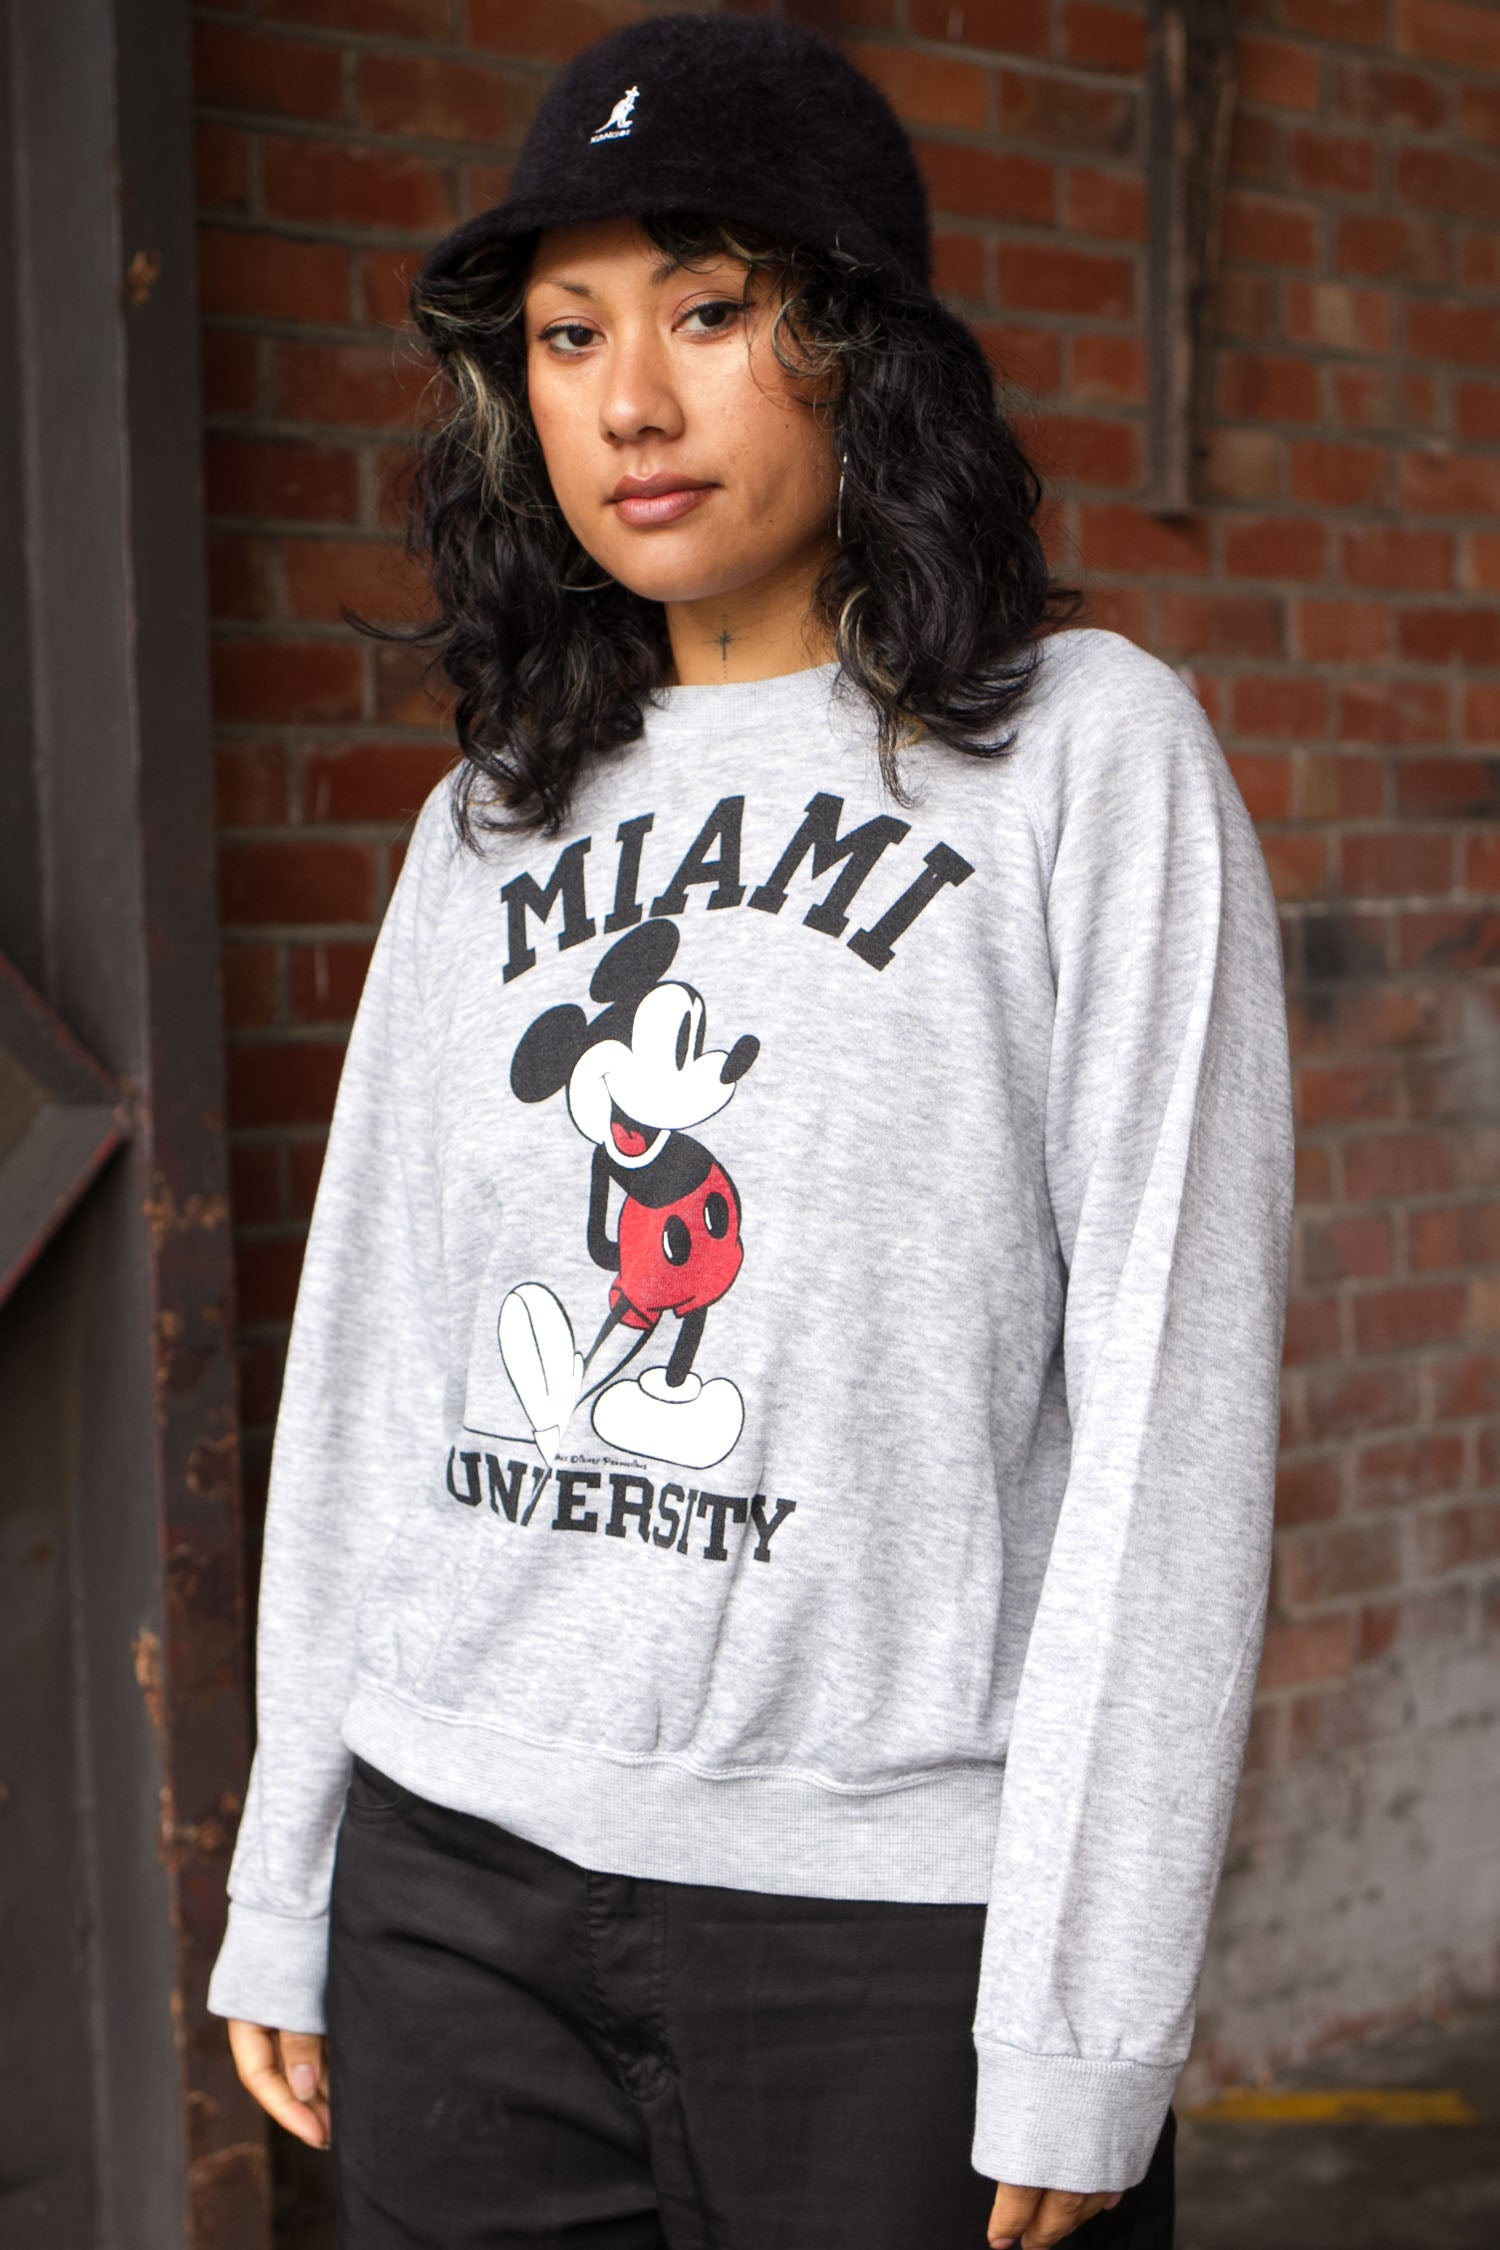 MIAMI UNIVERSITY DISNEY CREWNECK